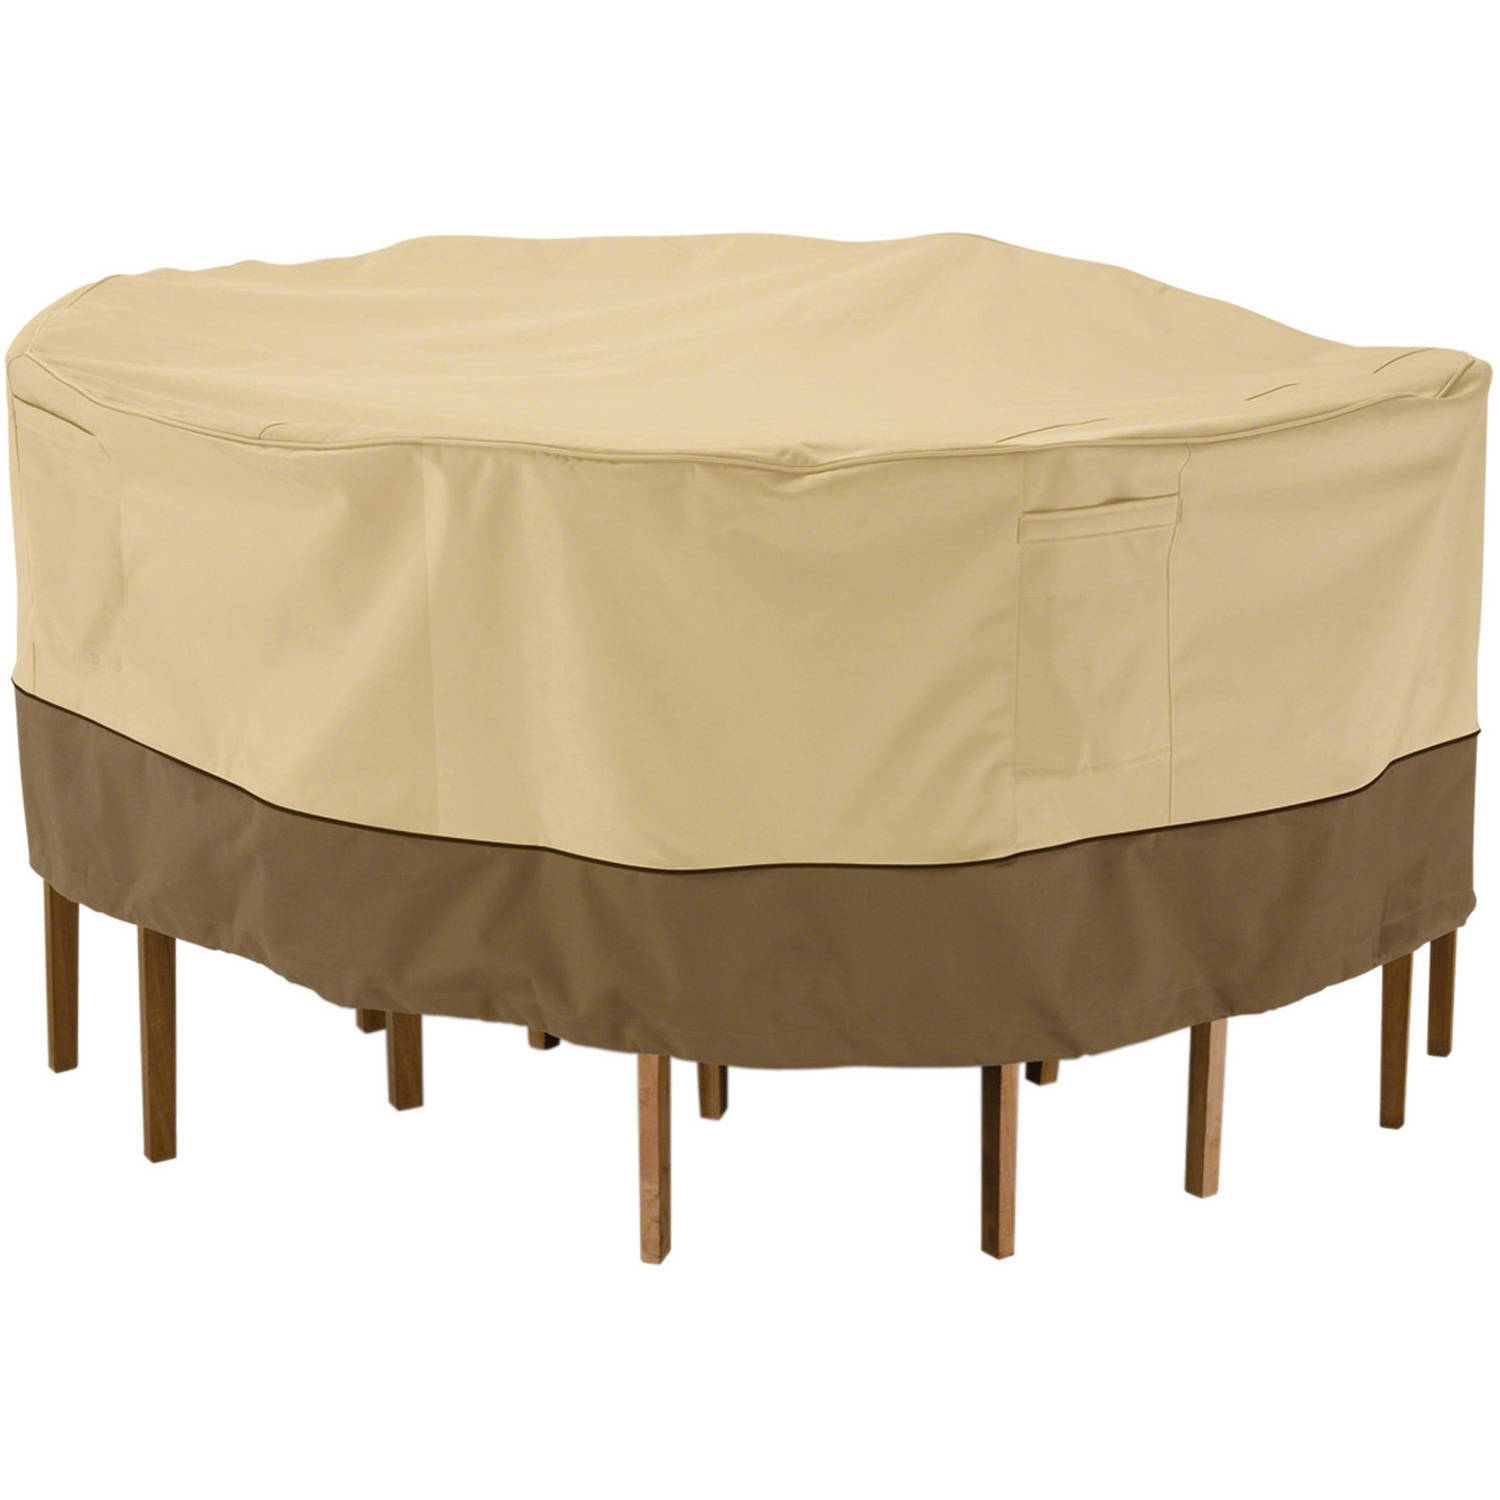 outside furniture covers. classic accessories veranda round patio table u0026 chair set cover durable and water resistant outdoor outside furniture covers